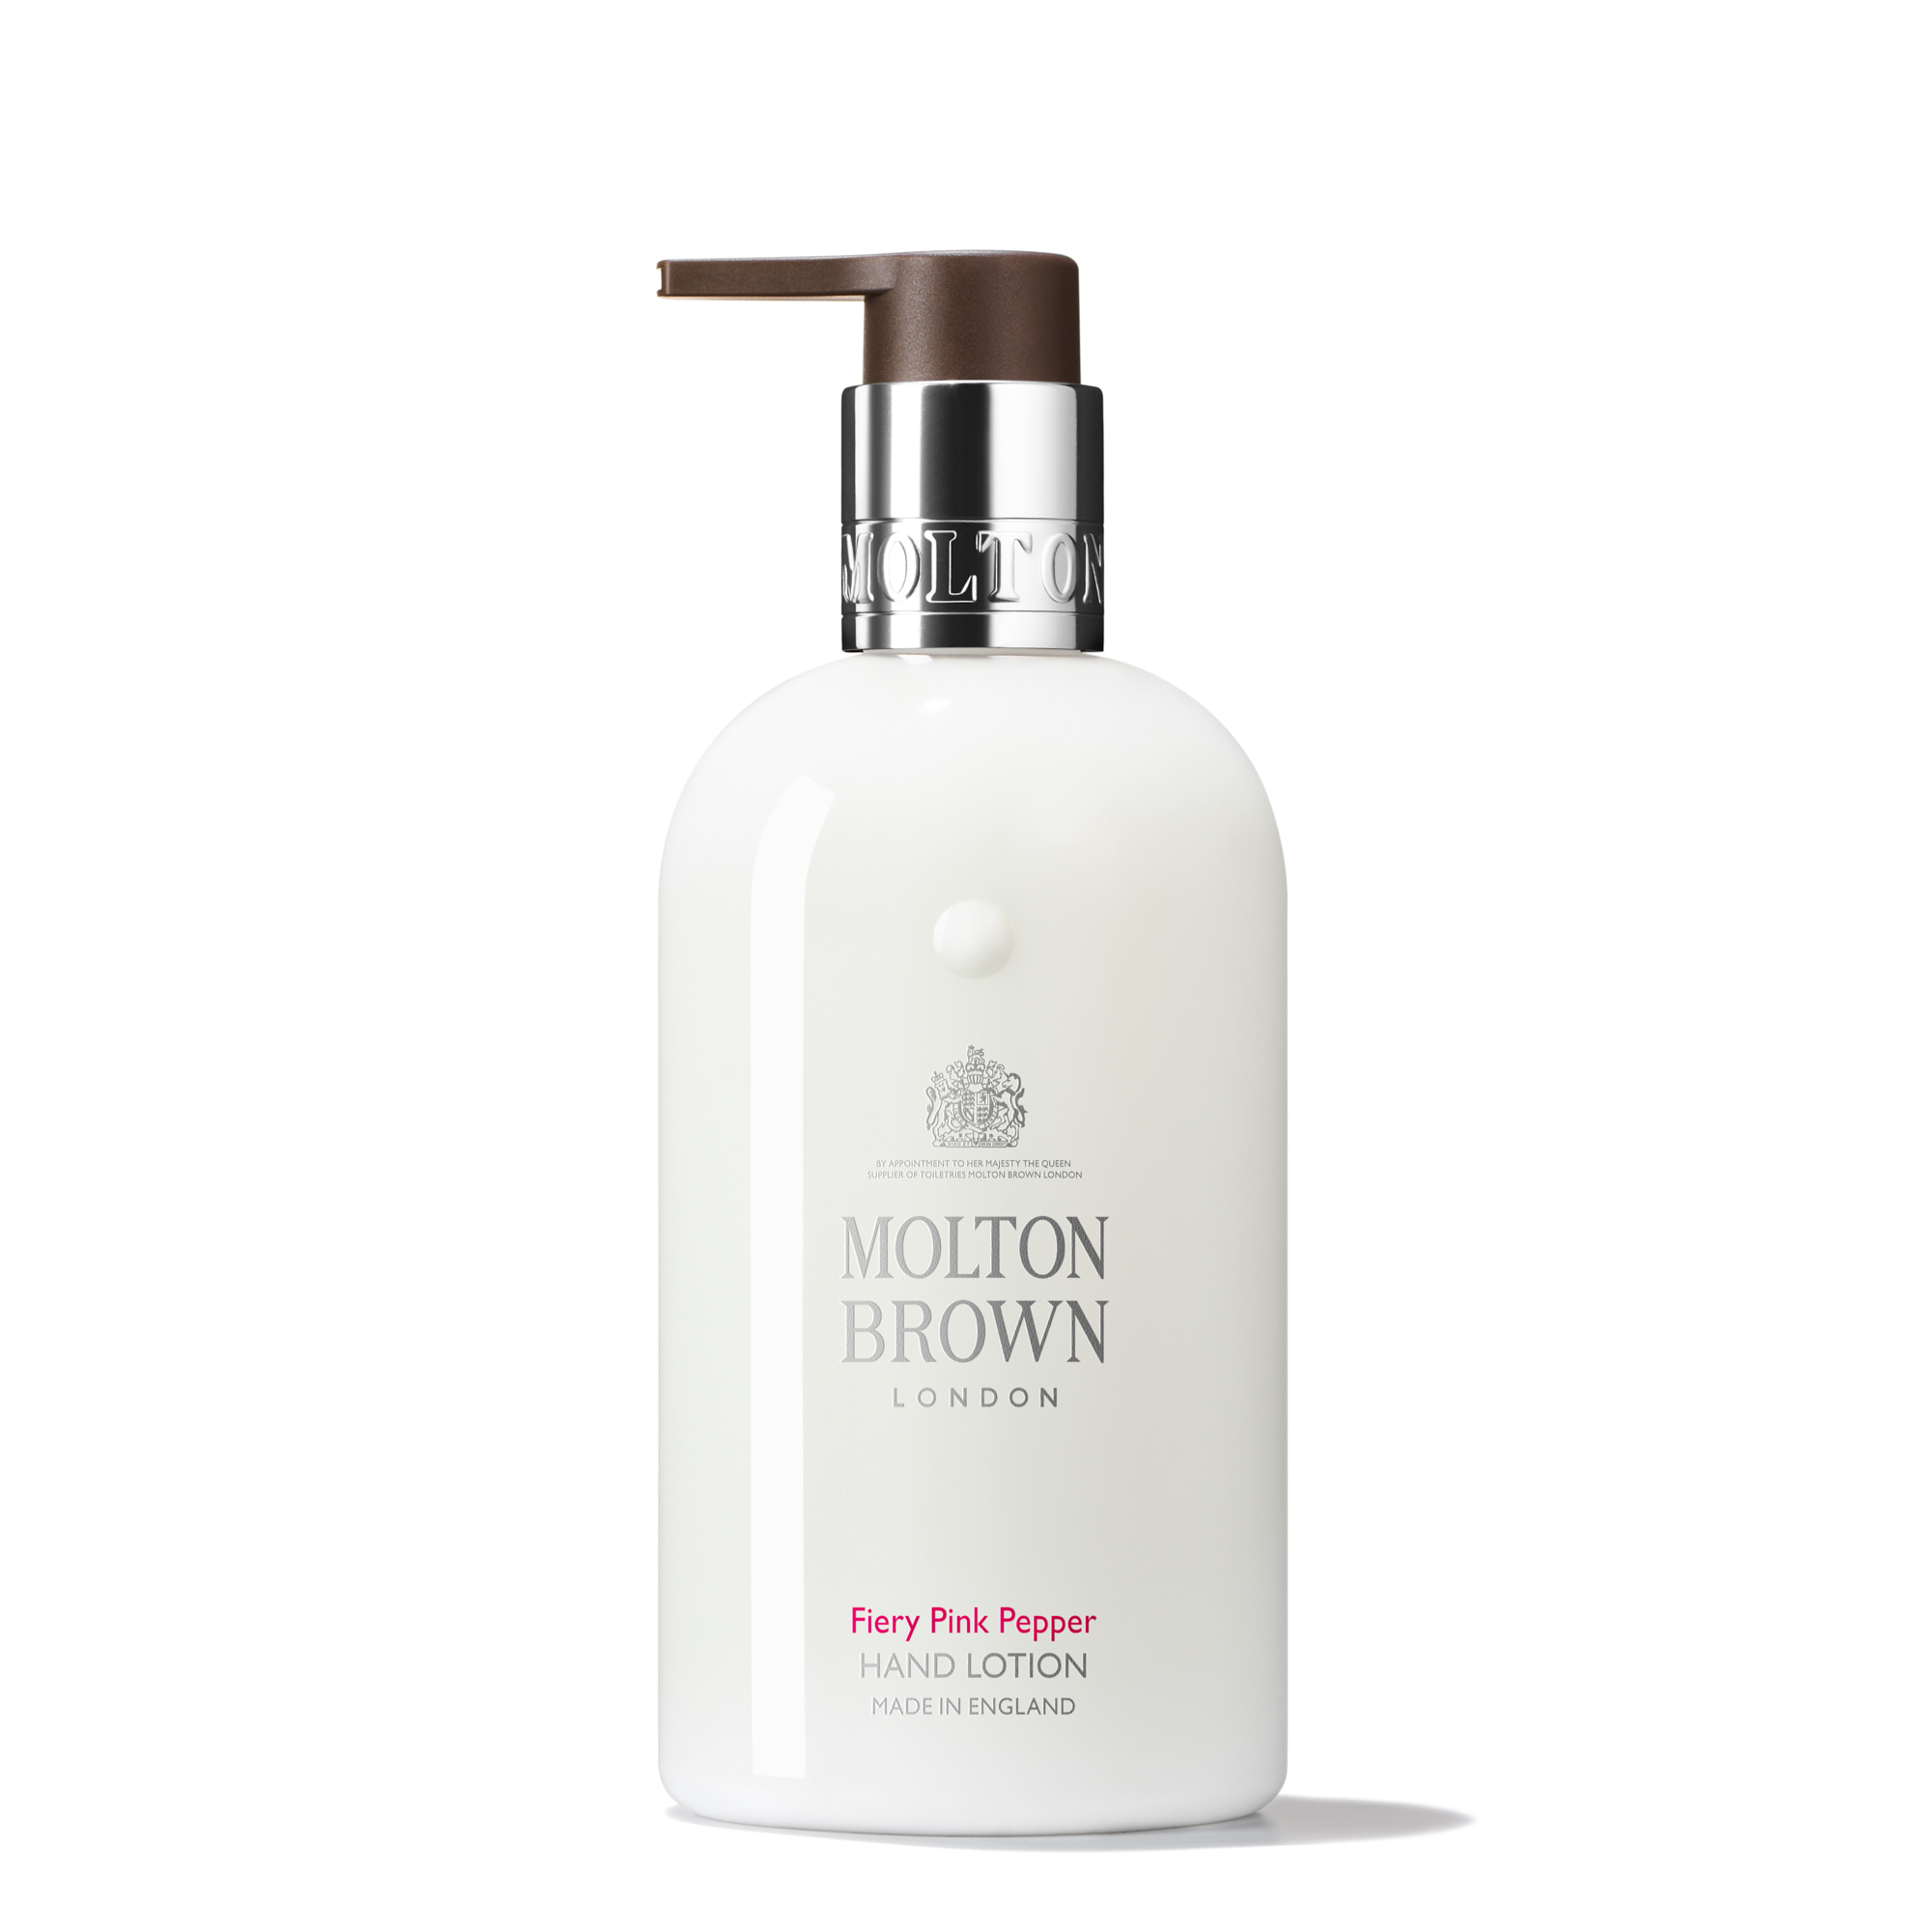 An image of Molton Brown Fiery Pink Pepper Hand Lotion 300ml - FIERY PINK PEPPER